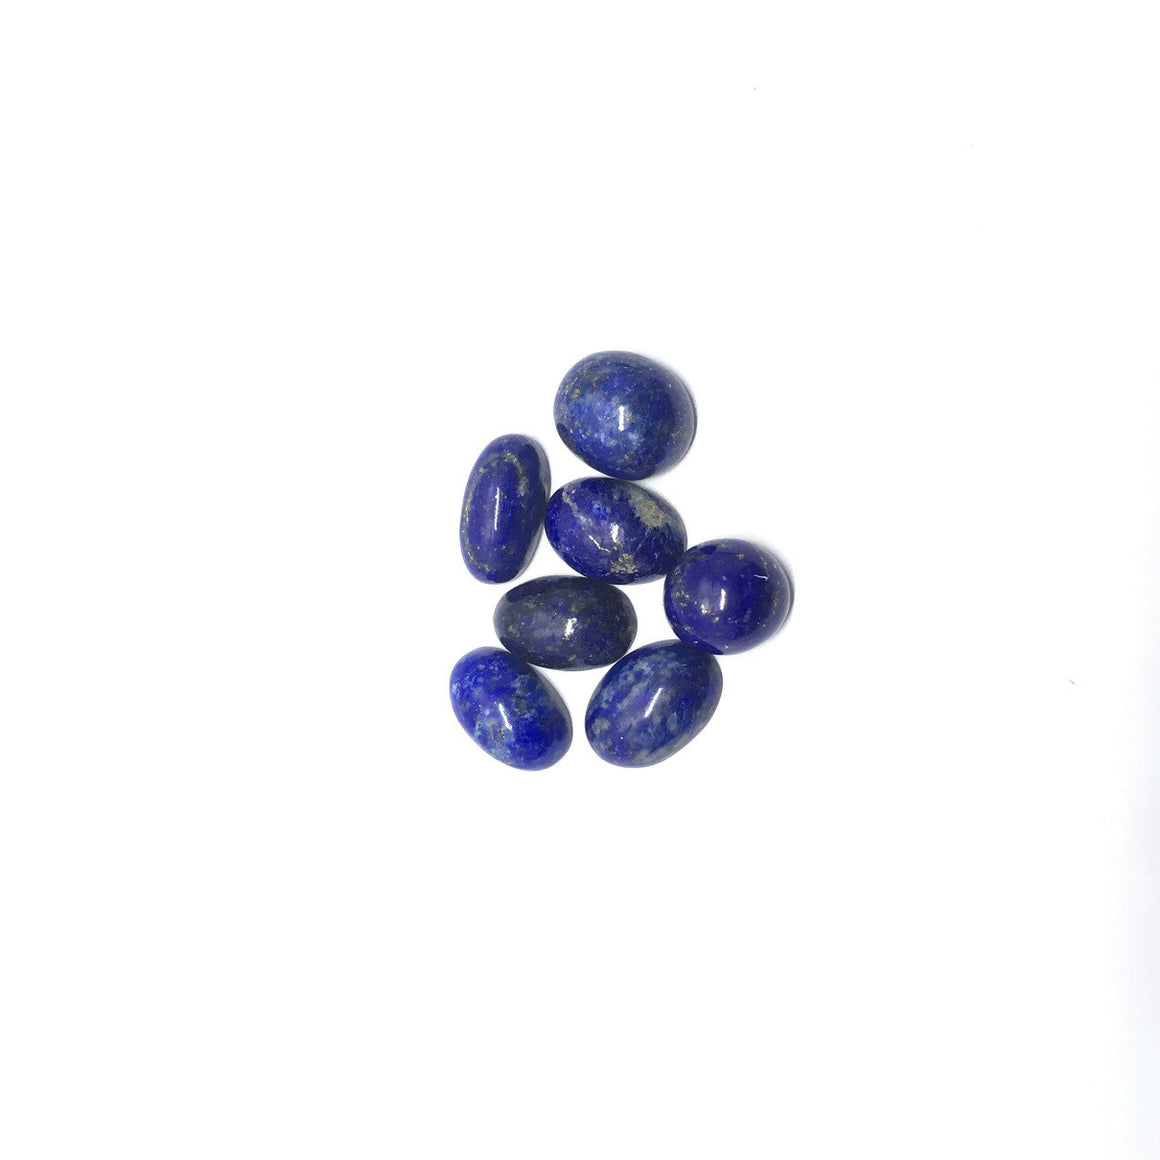 Lapis Lazuli Cabochon - Lapis Cabochon For Ring Oval Cut - 45.35 Carat